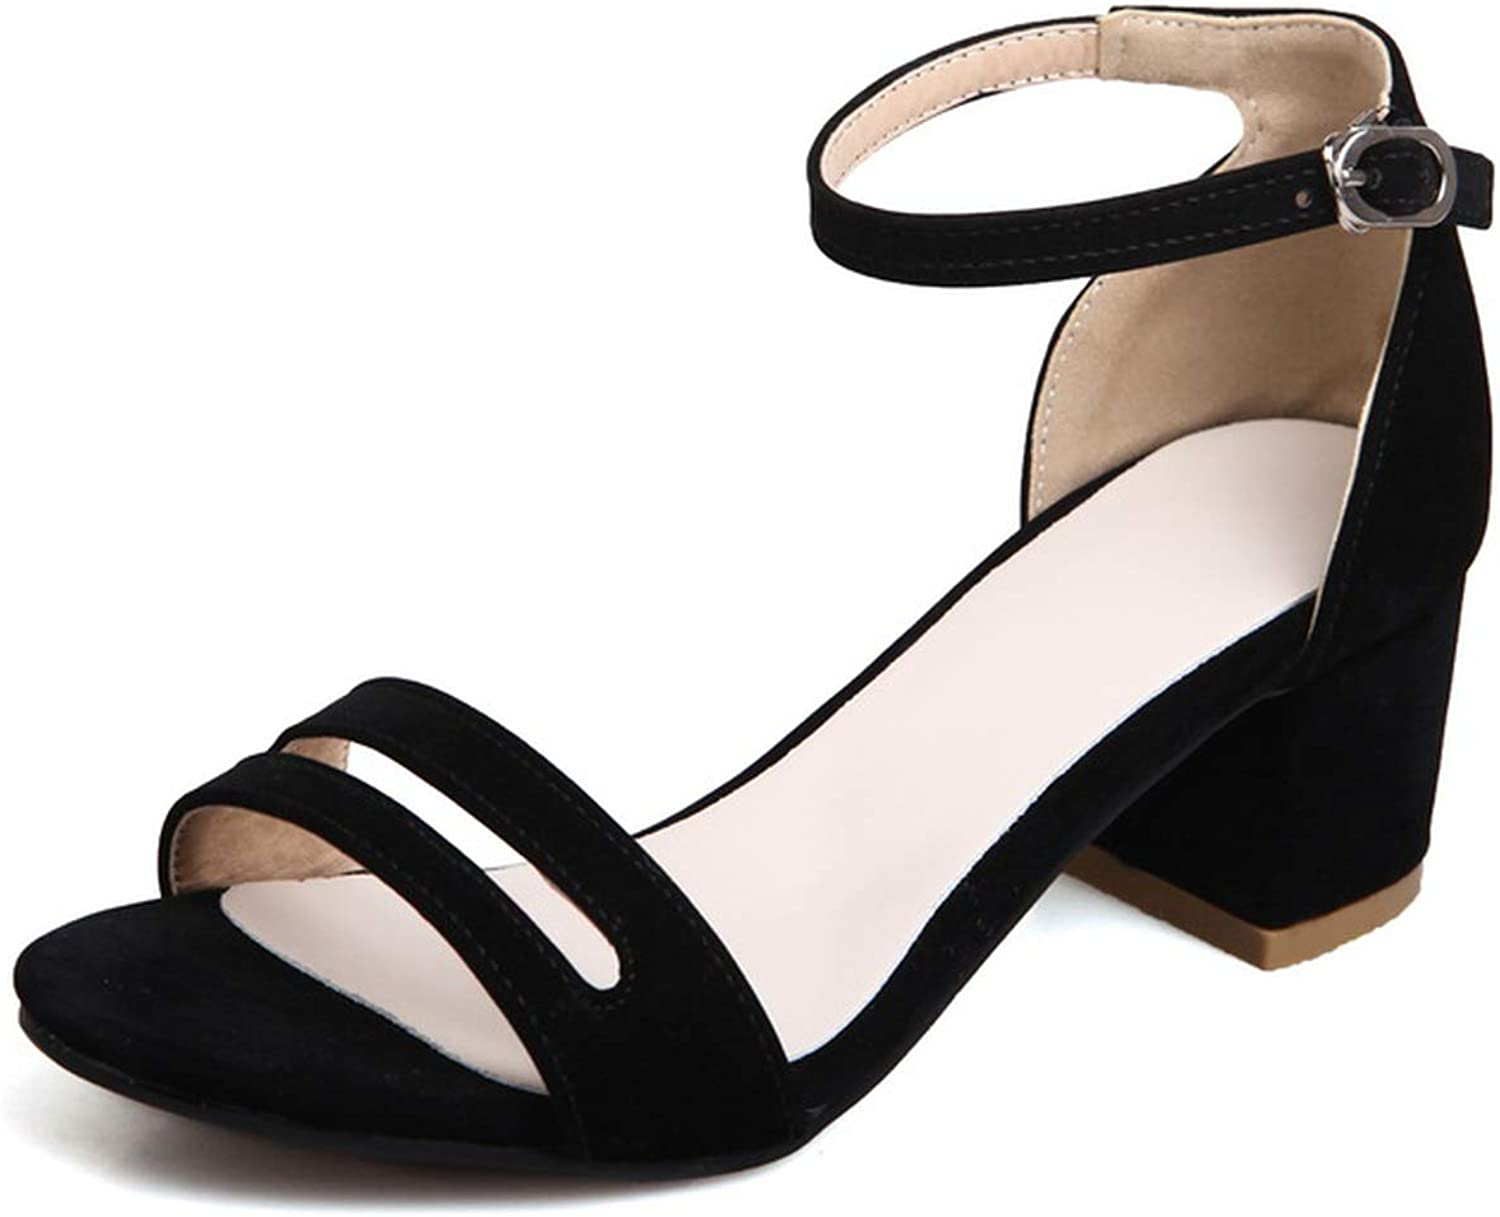 Mo Duo 2019 New Casual Women Sandals high Heels Women shoes Ankle Strap Fashion Ladies Sandals